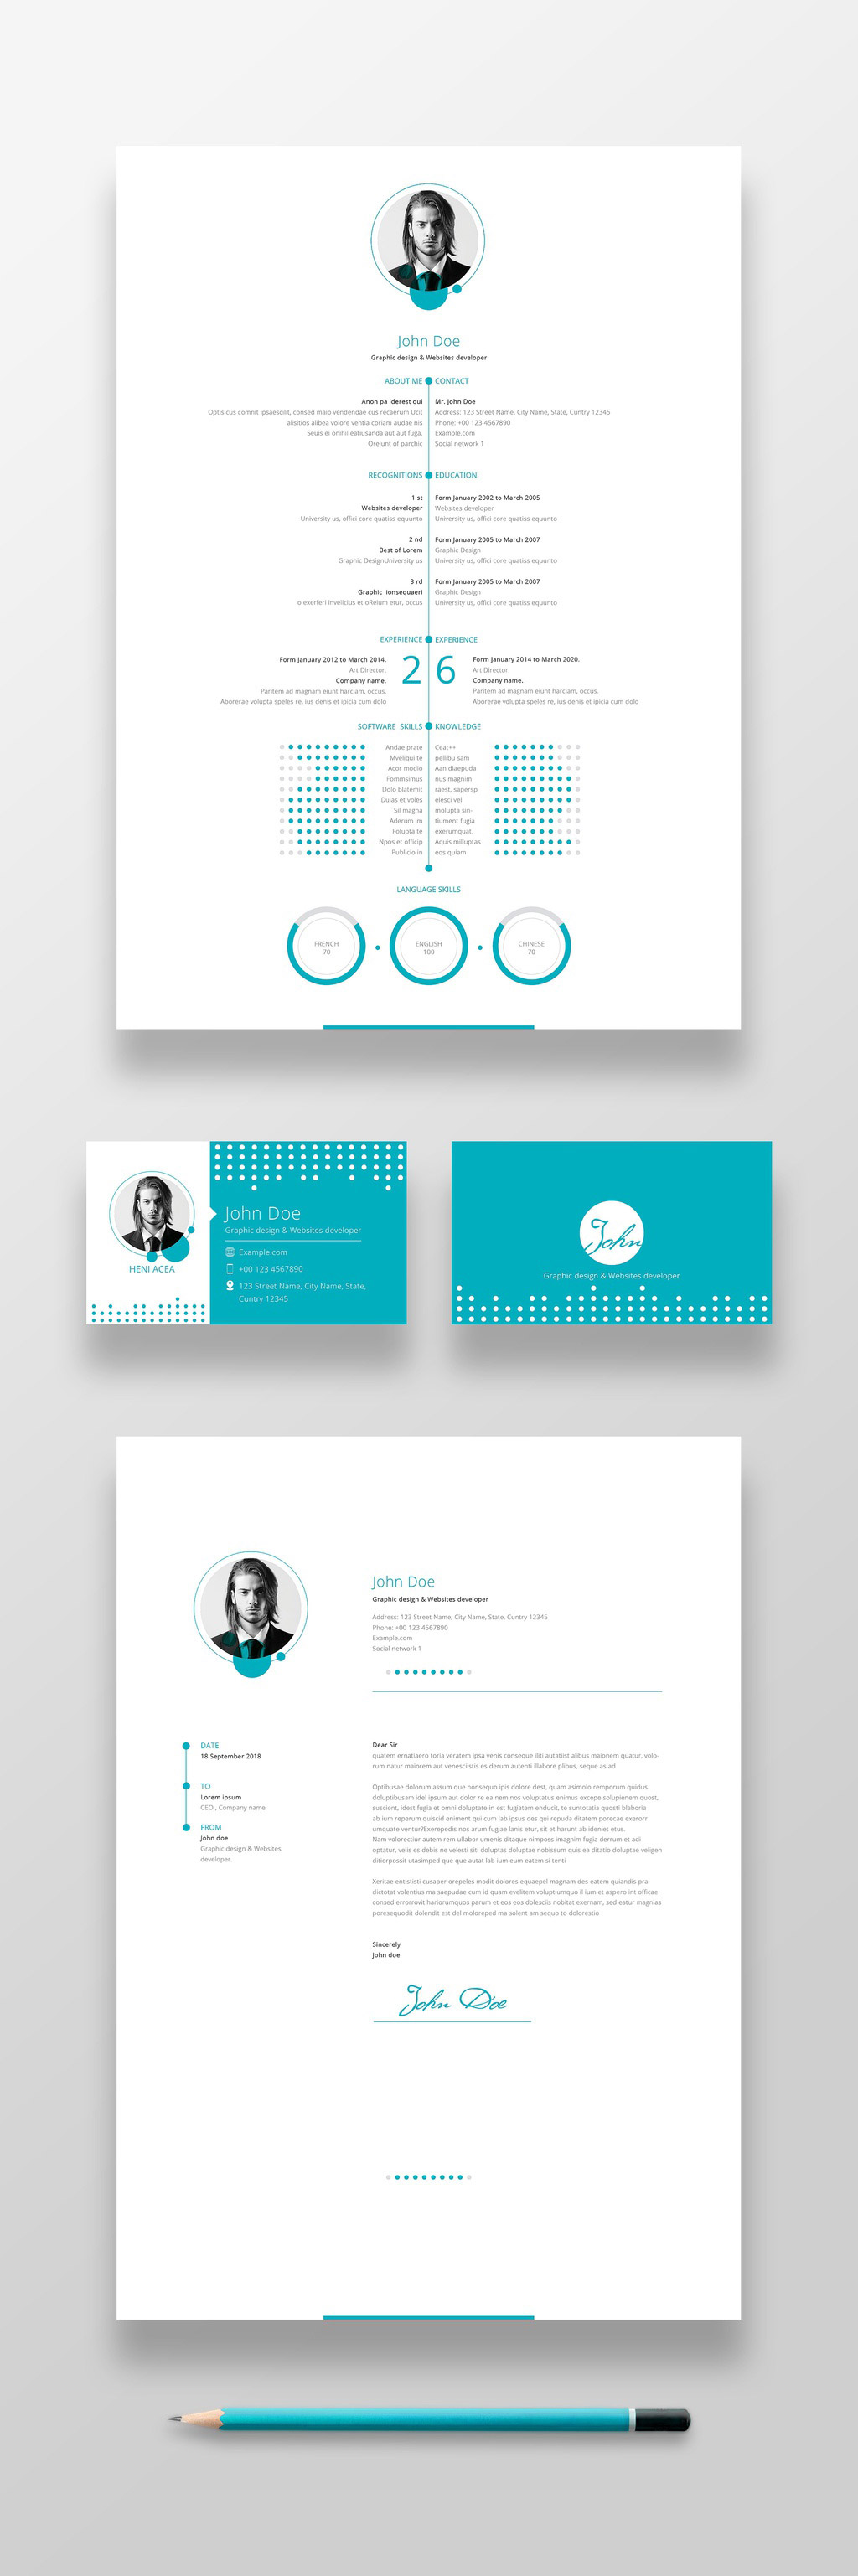 Blue resume, cover letter, and business card layout in a unique design.